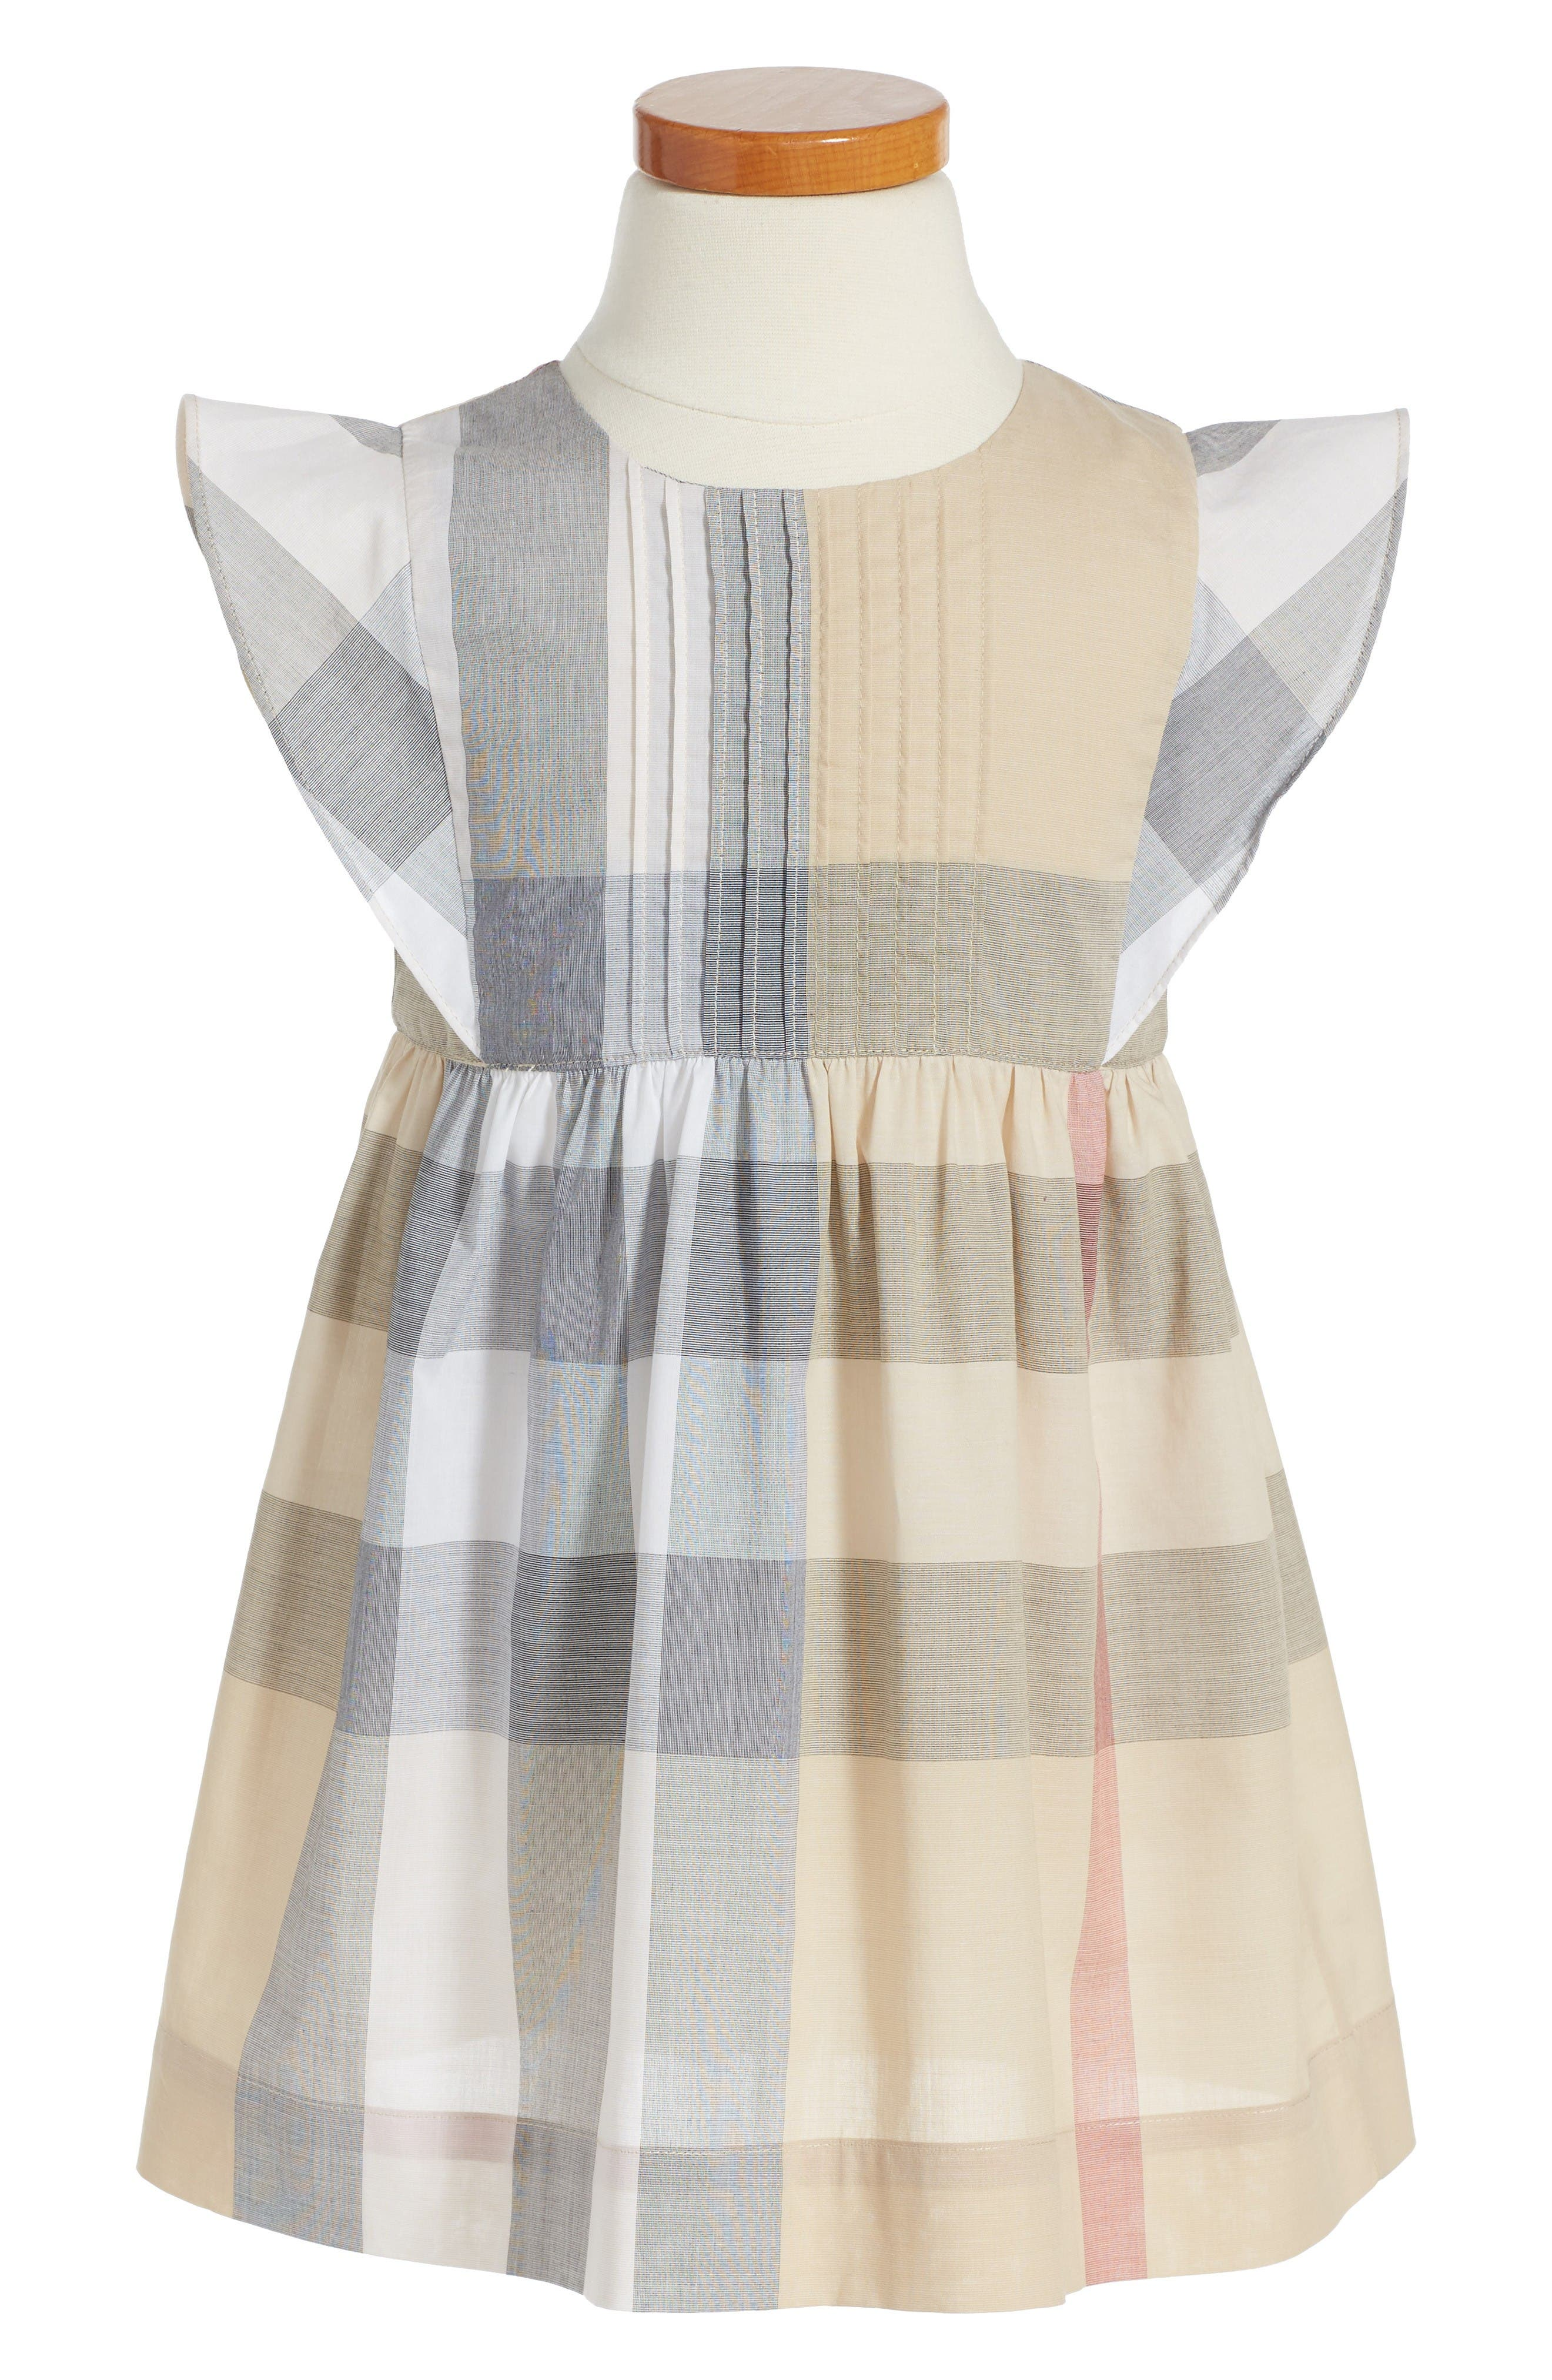 Burberry Gertrude Plaid Dress (Baby Girls & Toddler Girls)